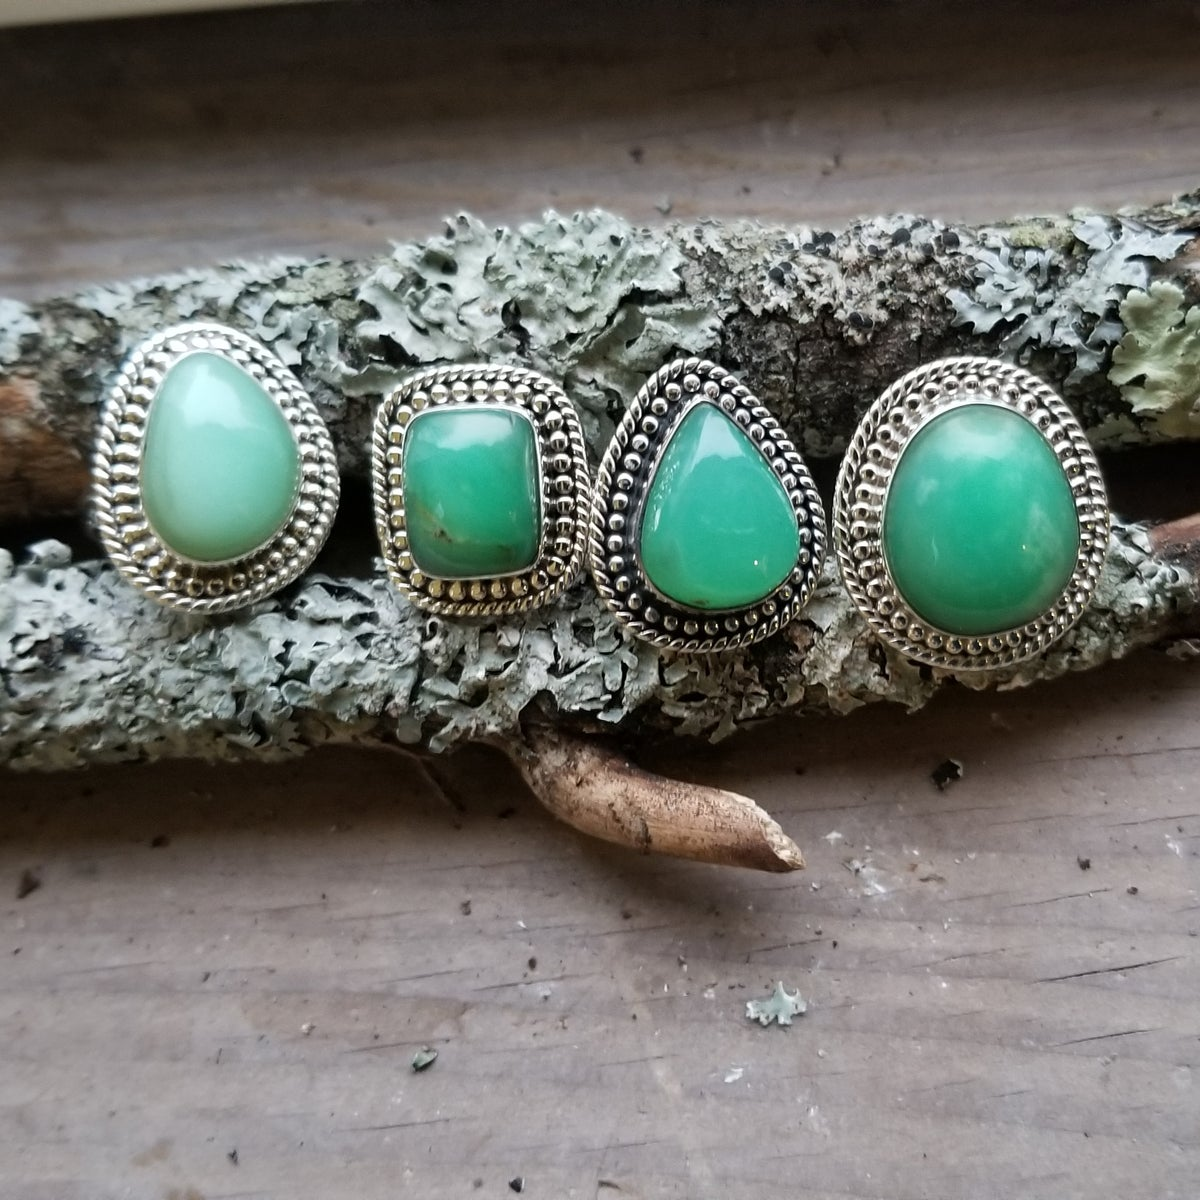 Image of Tortuga Ring - Chrysoprase in Sterling Silver